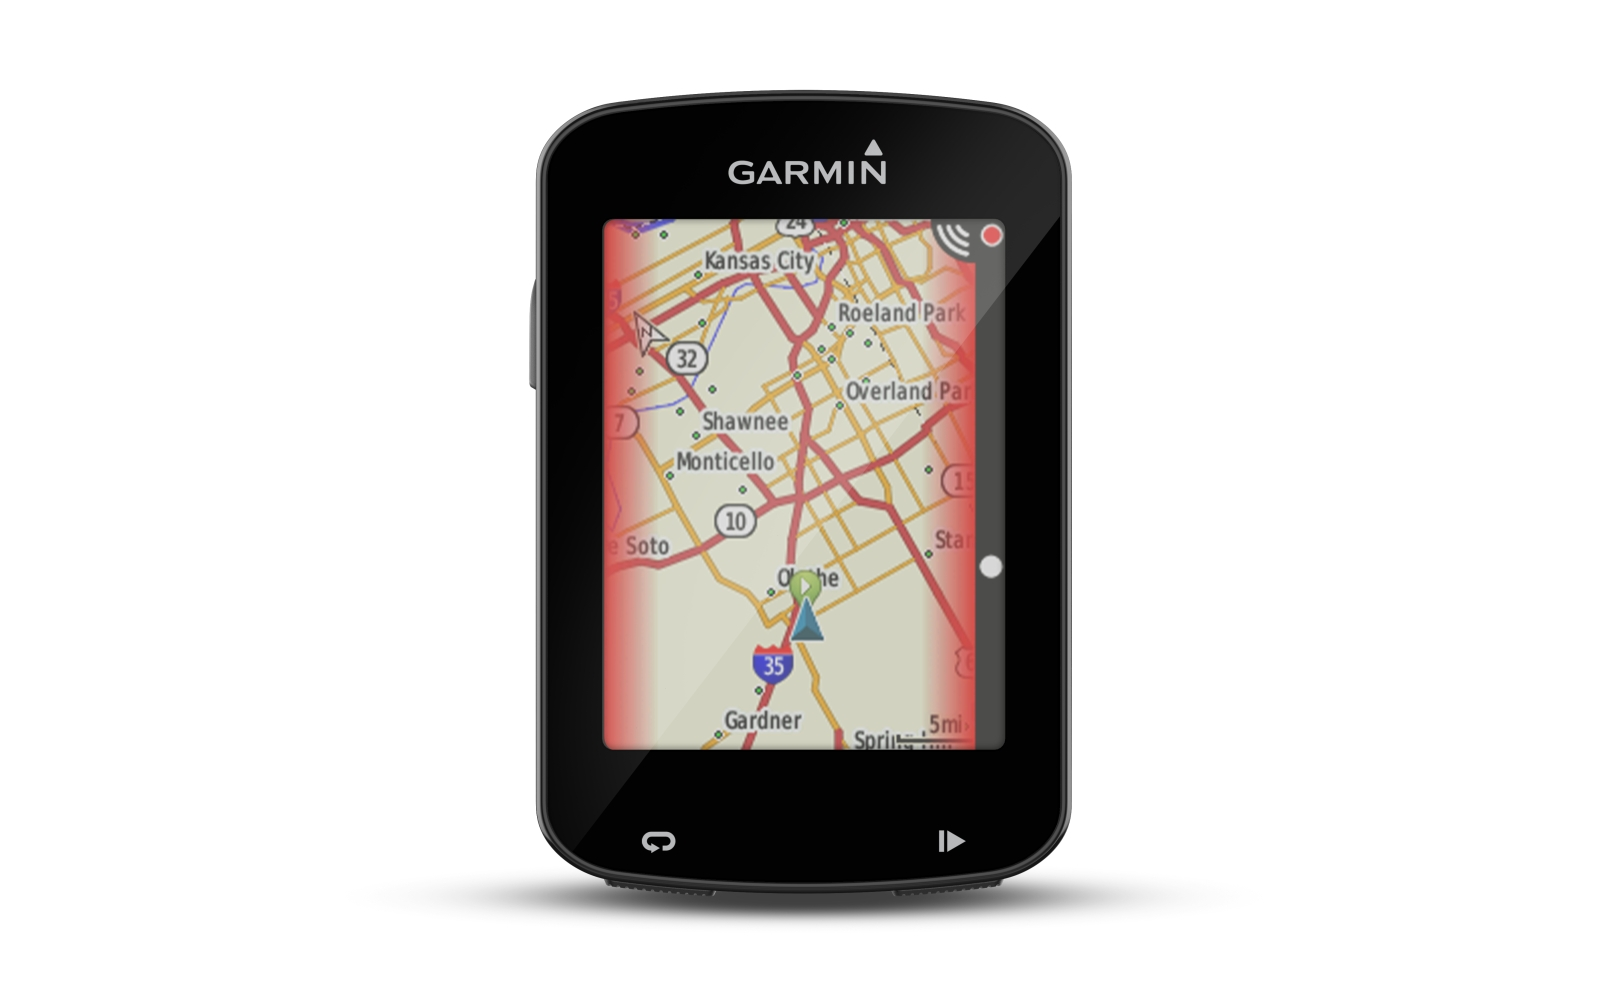 garmin edge 820 fahrrad gps. Black Bedroom Furniture Sets. Home Design Ideas